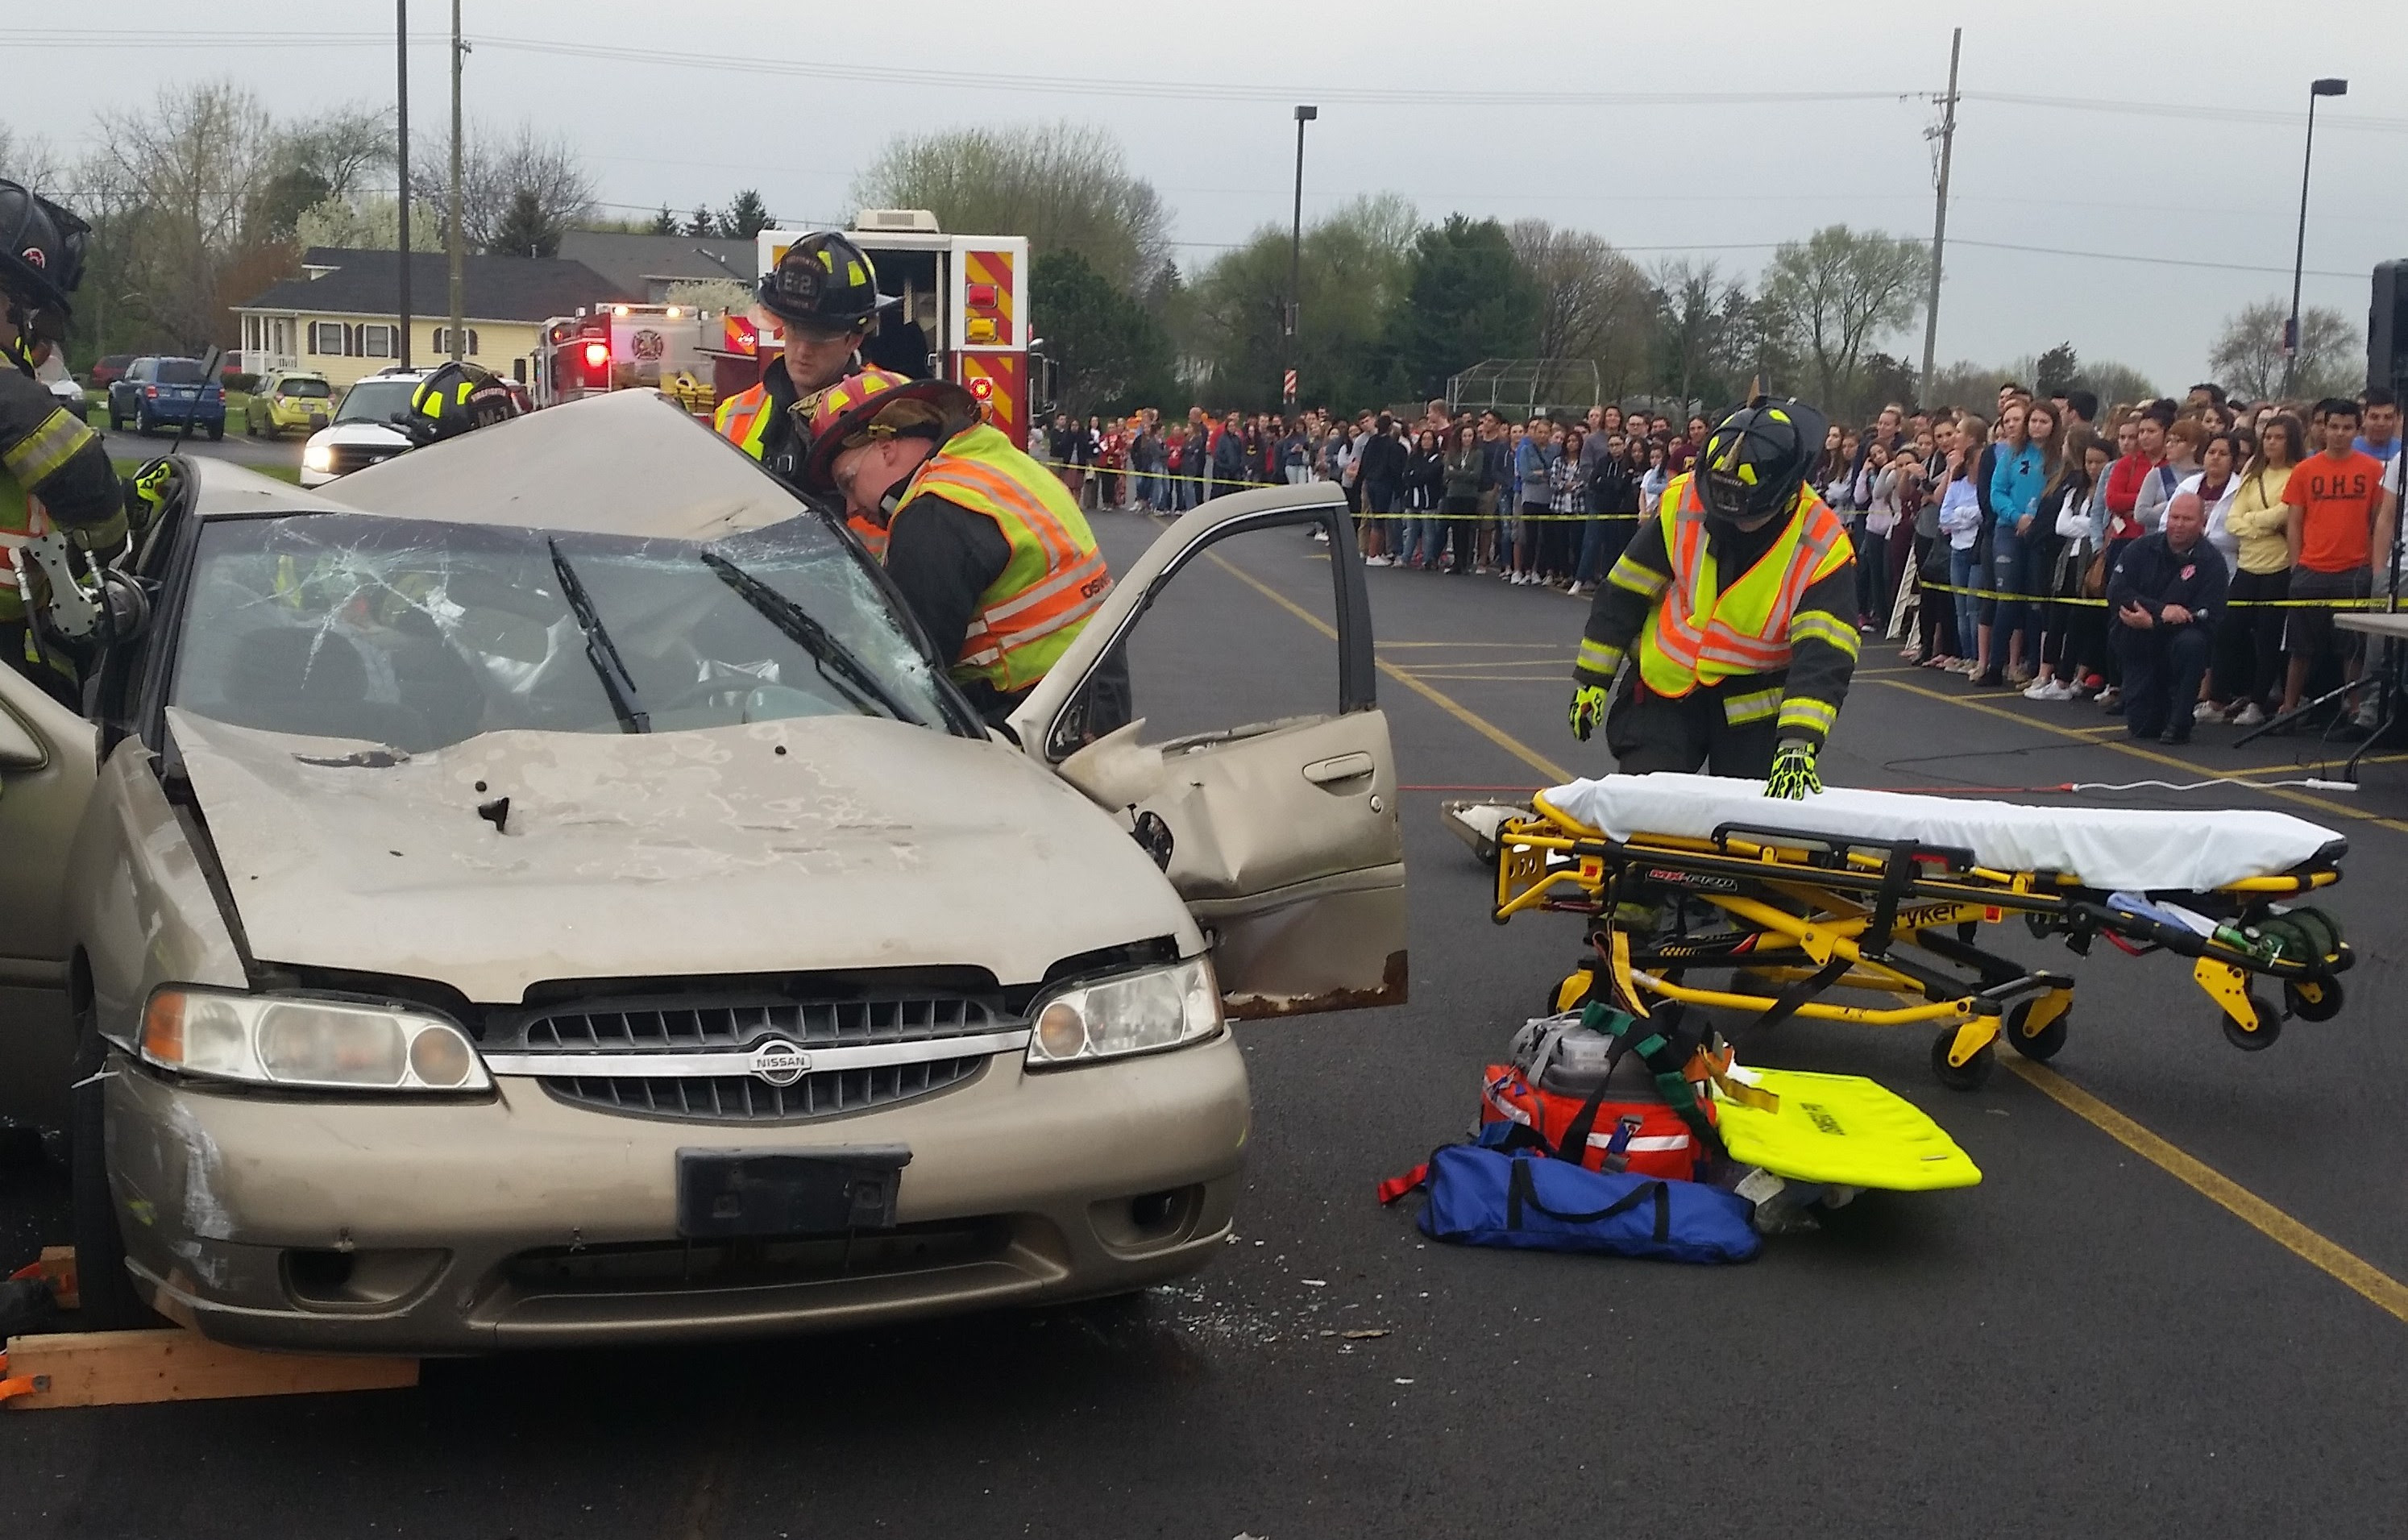 Illinois kendall county oswego - Oswego High School Recently Conducted An Operation Prom Crash Site Scenario To Demonstrate To